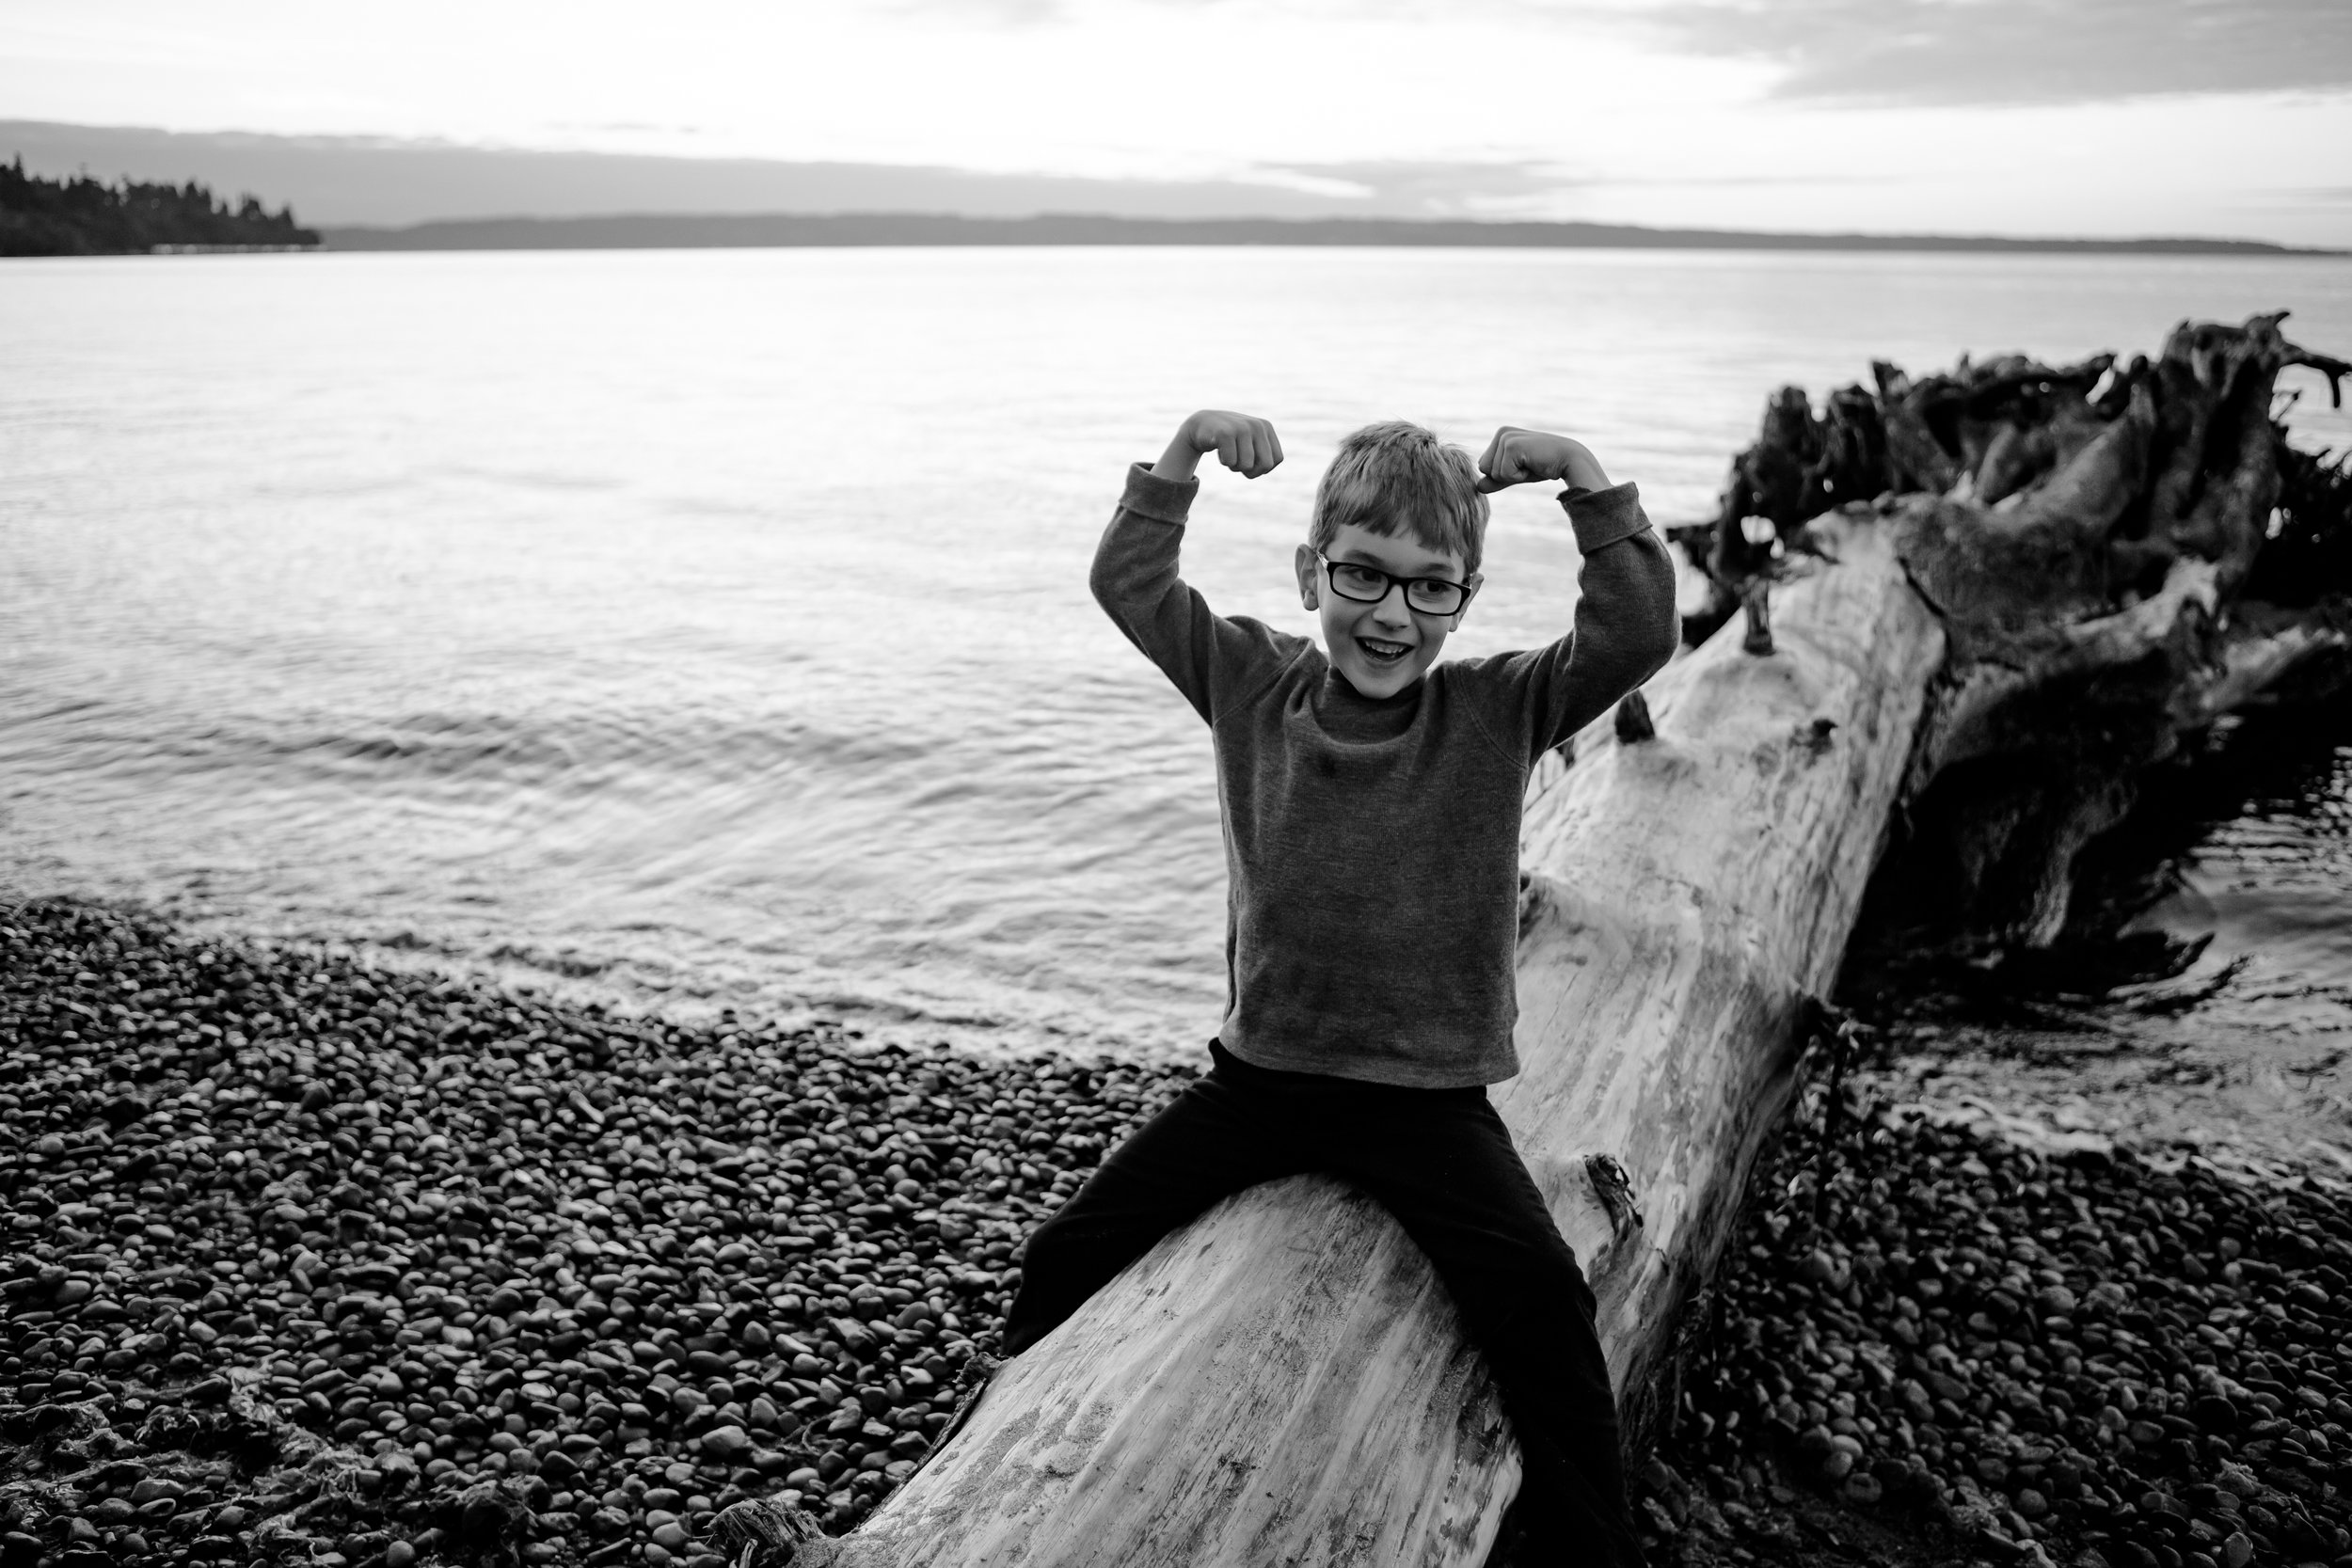 fun moment caught by Jane Kelly Photography of young boy